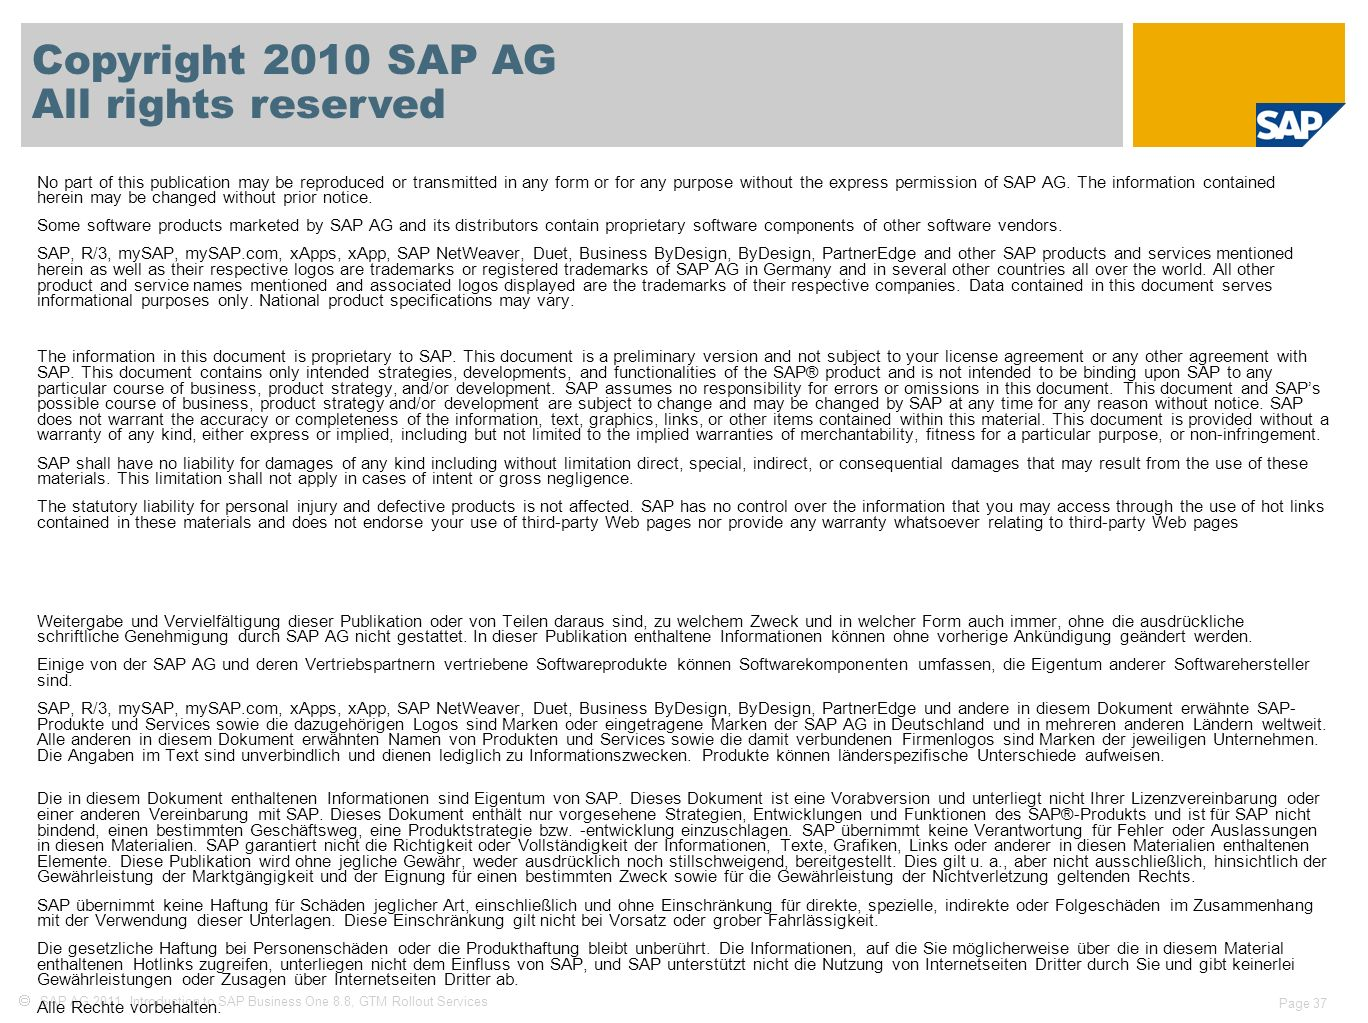  SAP AG 2011, Introduction to SAP Business One 8.8, GTM Rollout Services Page 37 Copyright 2010 SAP AG All rights reserved No part of this publication may be reproduced or transmitted in any form or for any purpose without the express permission of SAP AG.